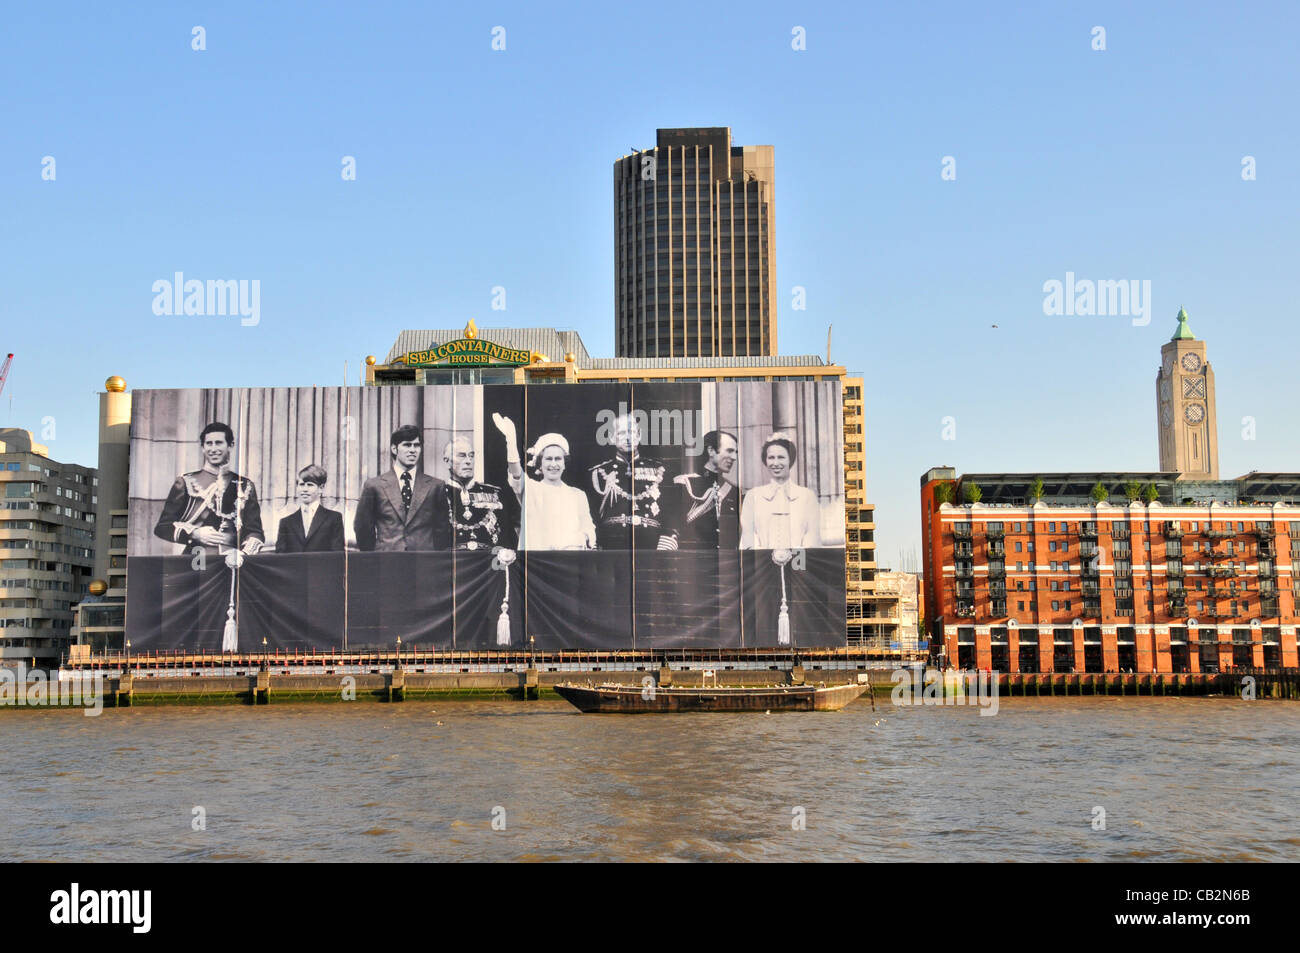 Londres, Royaume-Uni. 25 mai, 2012. La plus grande photo de la famille royale à l'avant de Sea Containers Photo Stock